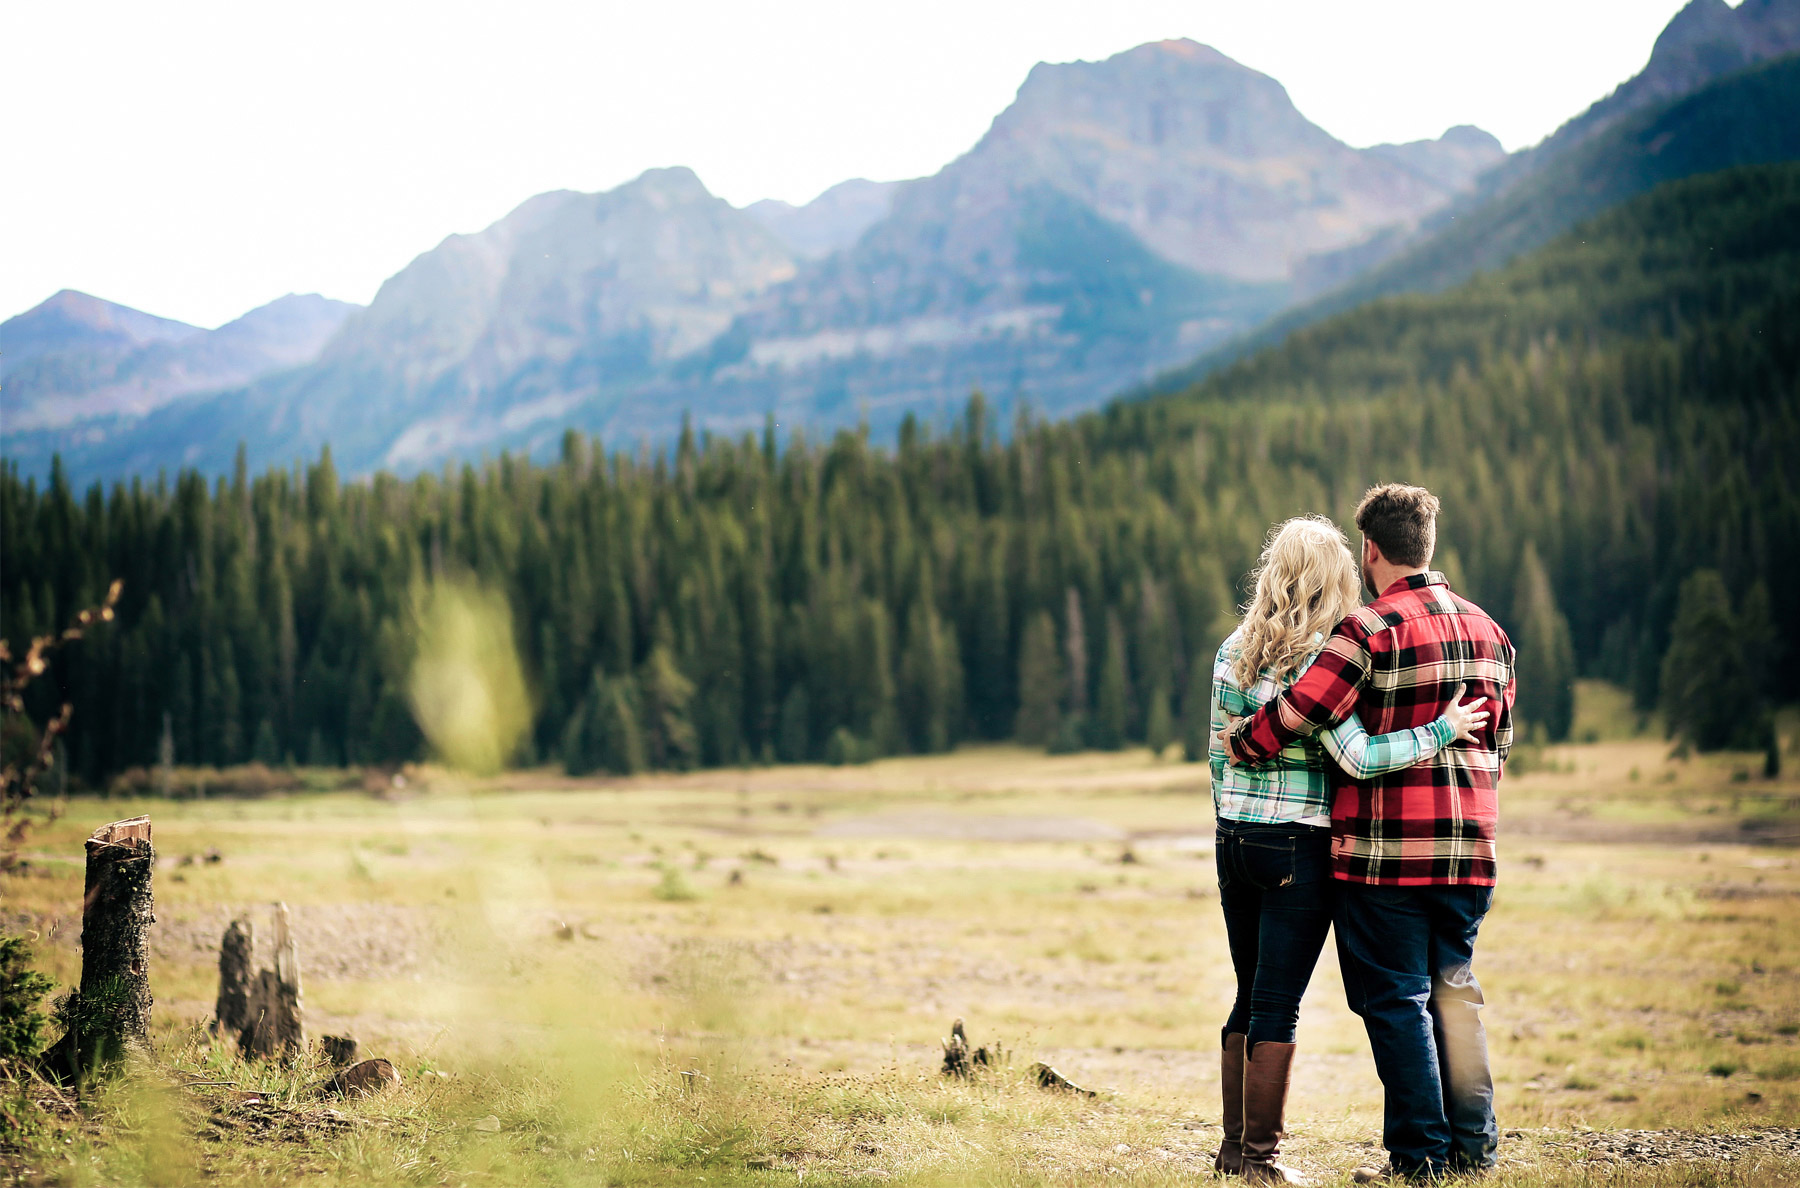 04-Bozeman-Montana-Engagement-Photos-by-Vick-Photography-Destination-Rustic-Mountain-Fields-Molly-&-Carson.jpg